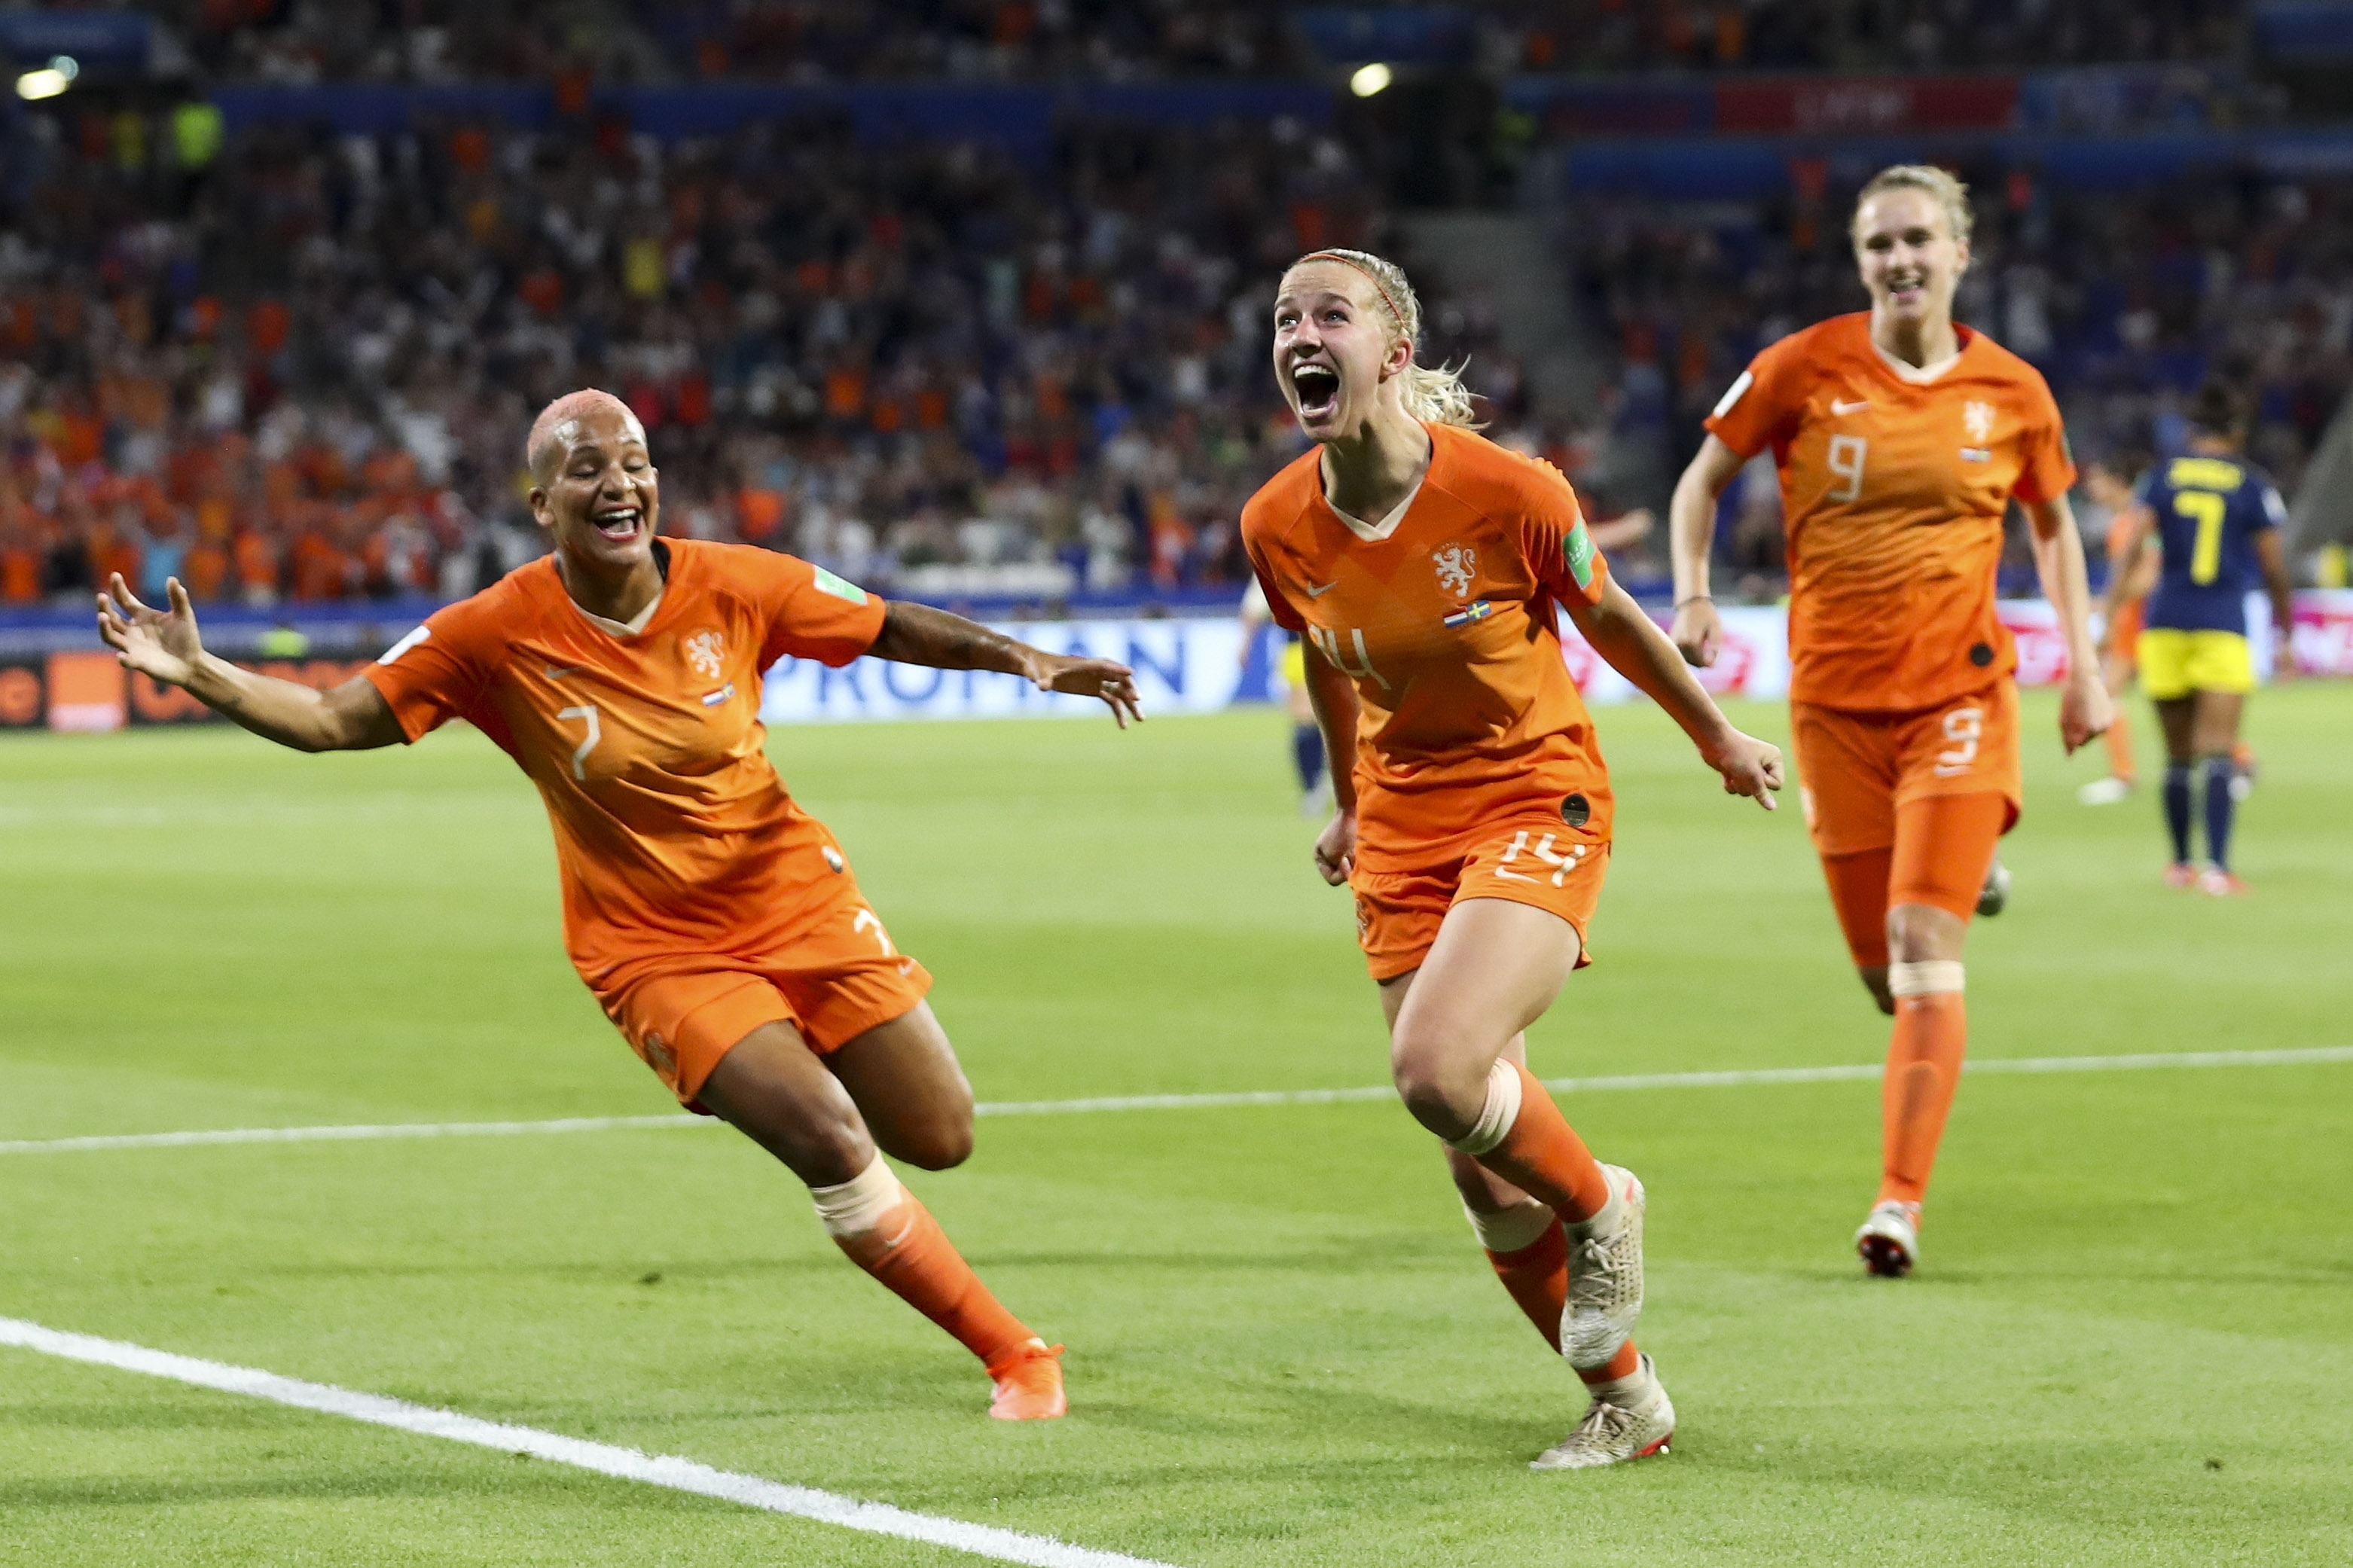 Netherlands vs  Sweden: Oranje wins, will play USA in its